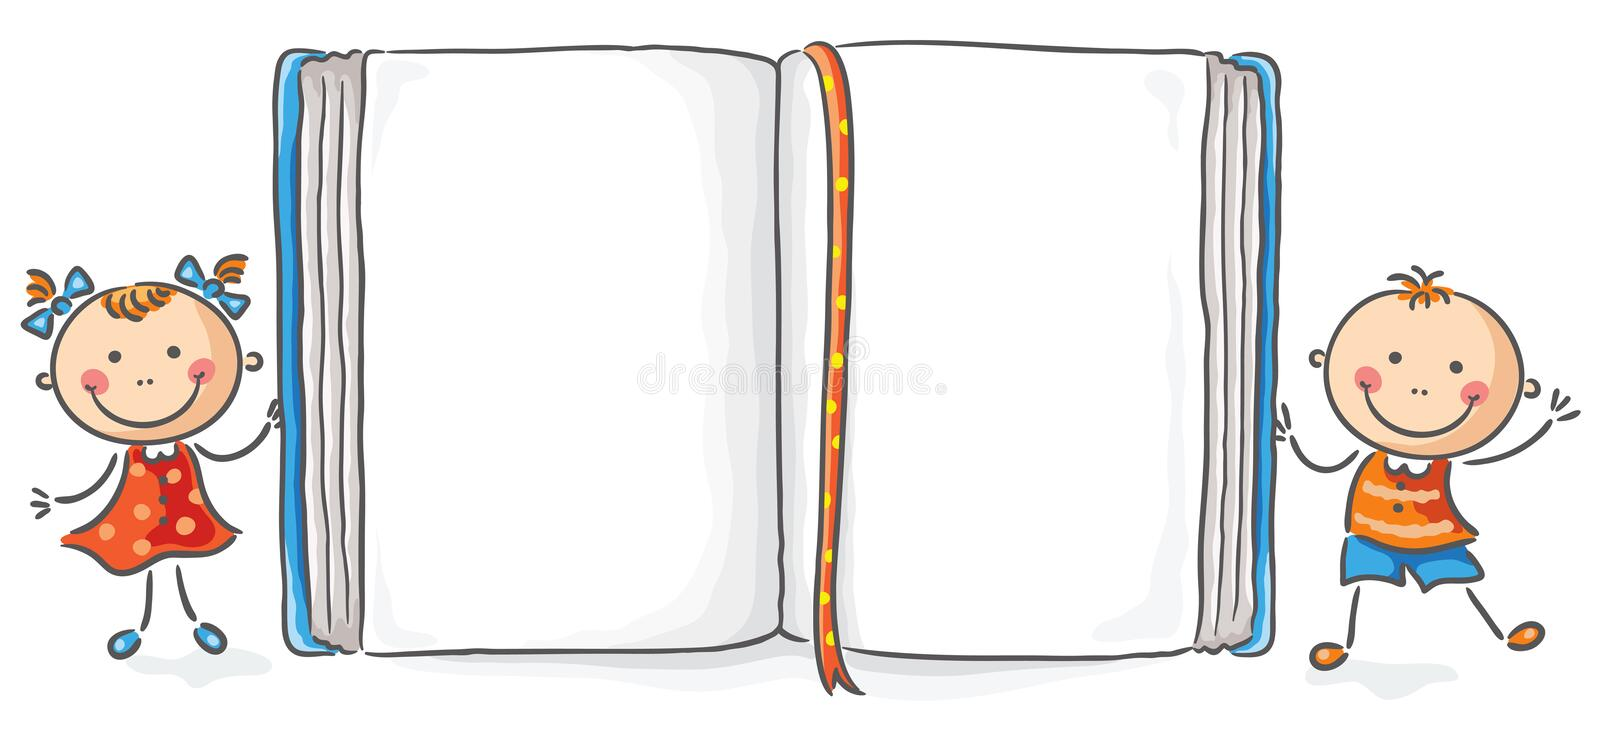 Kids with a big book royalty free illustration